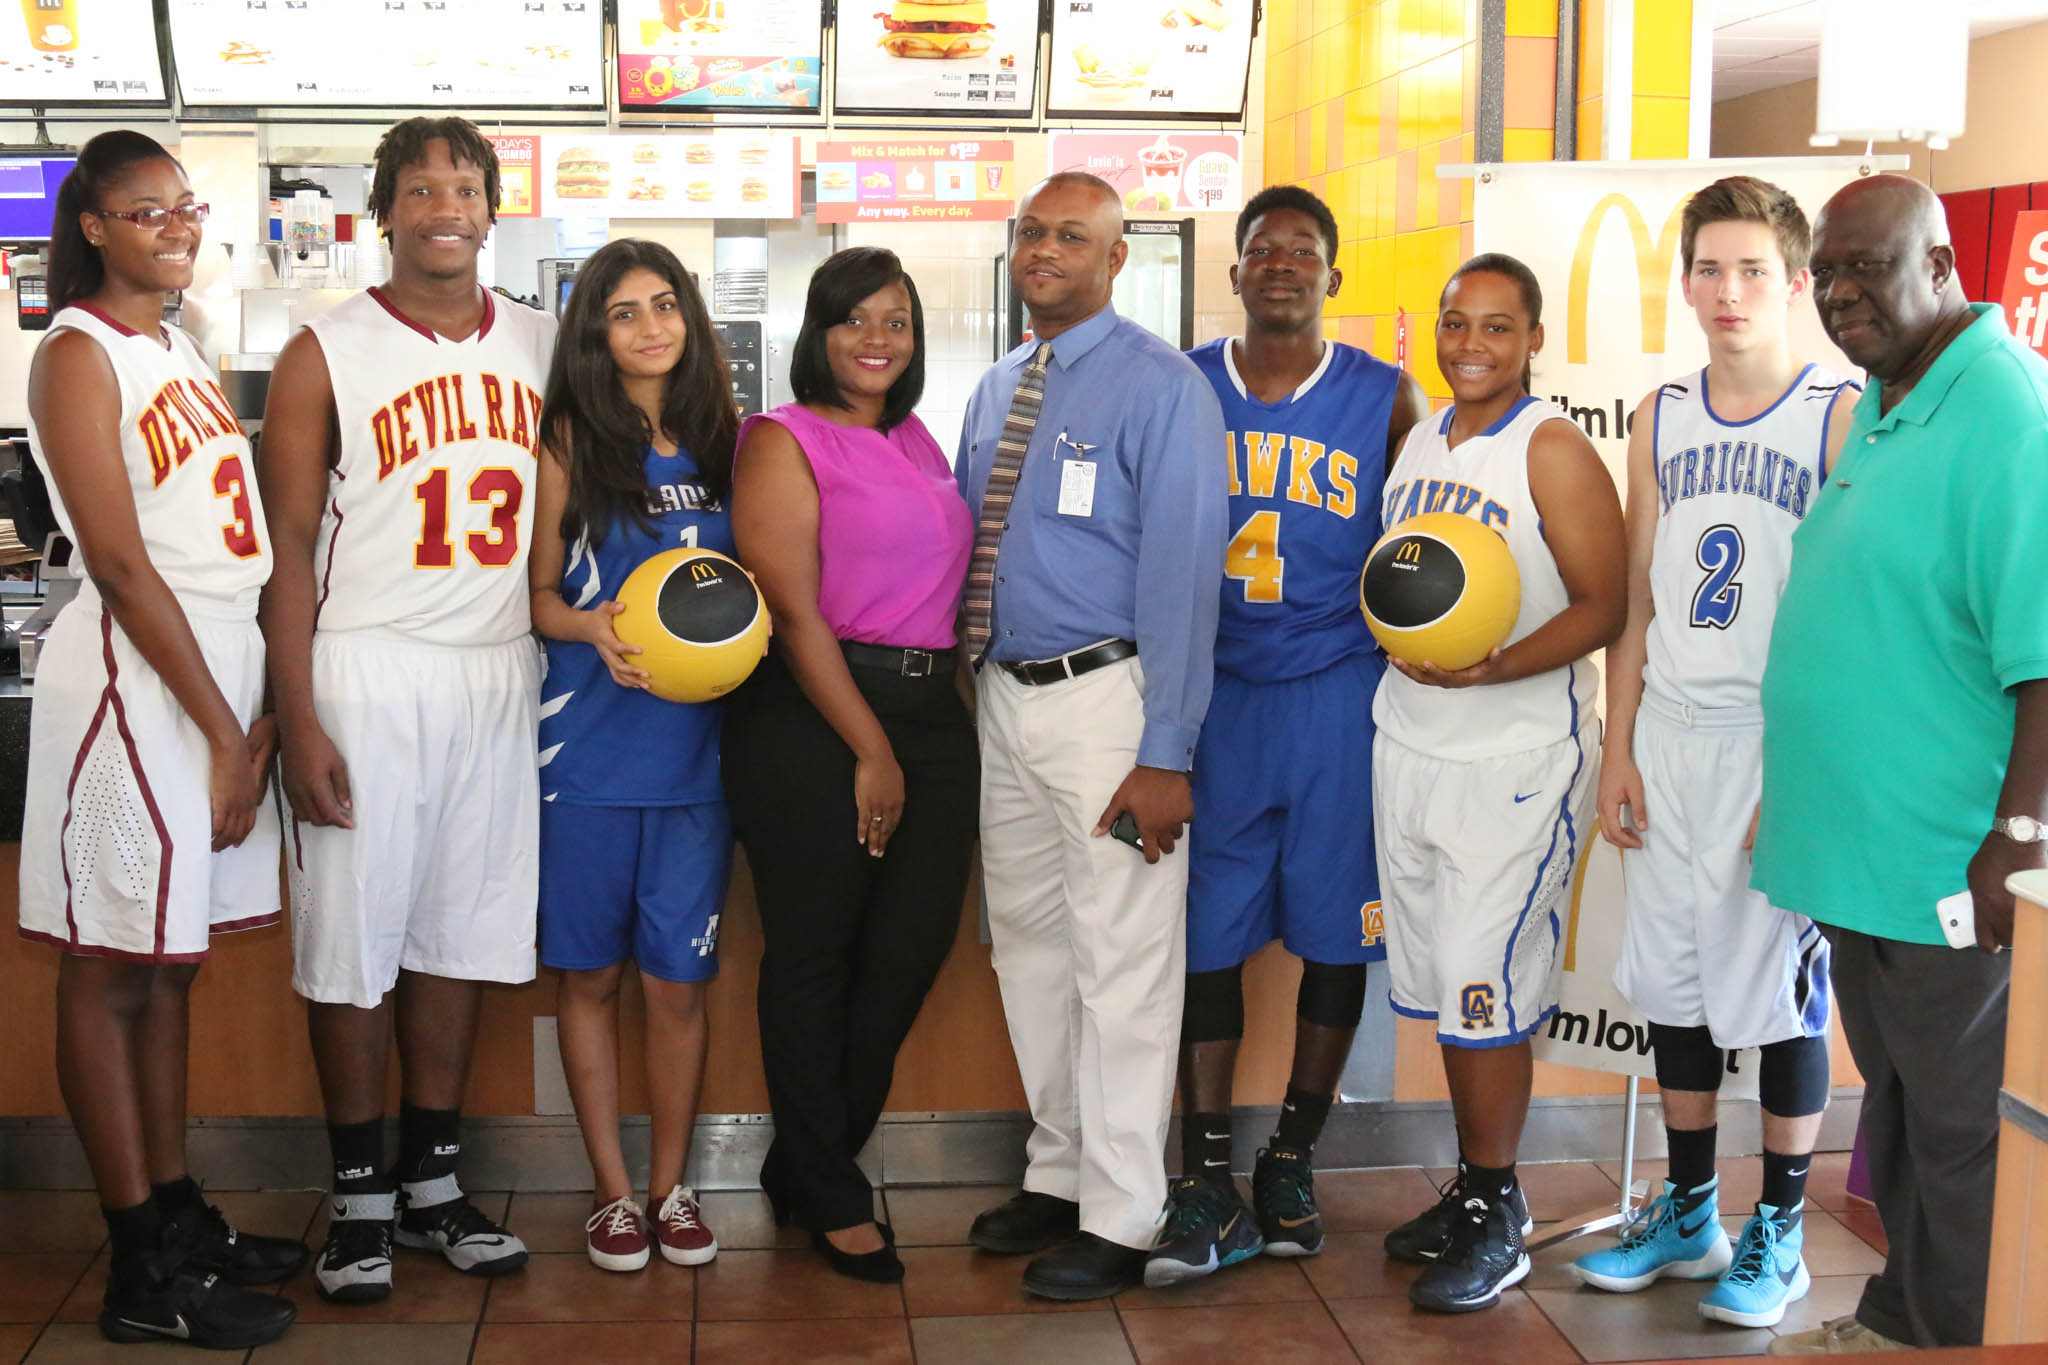 (From left) Haleema Francis and DeQuan Solis of Ivanna Eudora Kean; Mansi Totwani of Antilles School; Alithia Hodge, McDonald's operations supervisor; Mark Daniel of the DOE; Robelto James and Rhea Benjamin of CAHS; Ethan Lysiak of Antilles School; Buddy Kennings, commissioner of the Interscholastic Athletics Association.